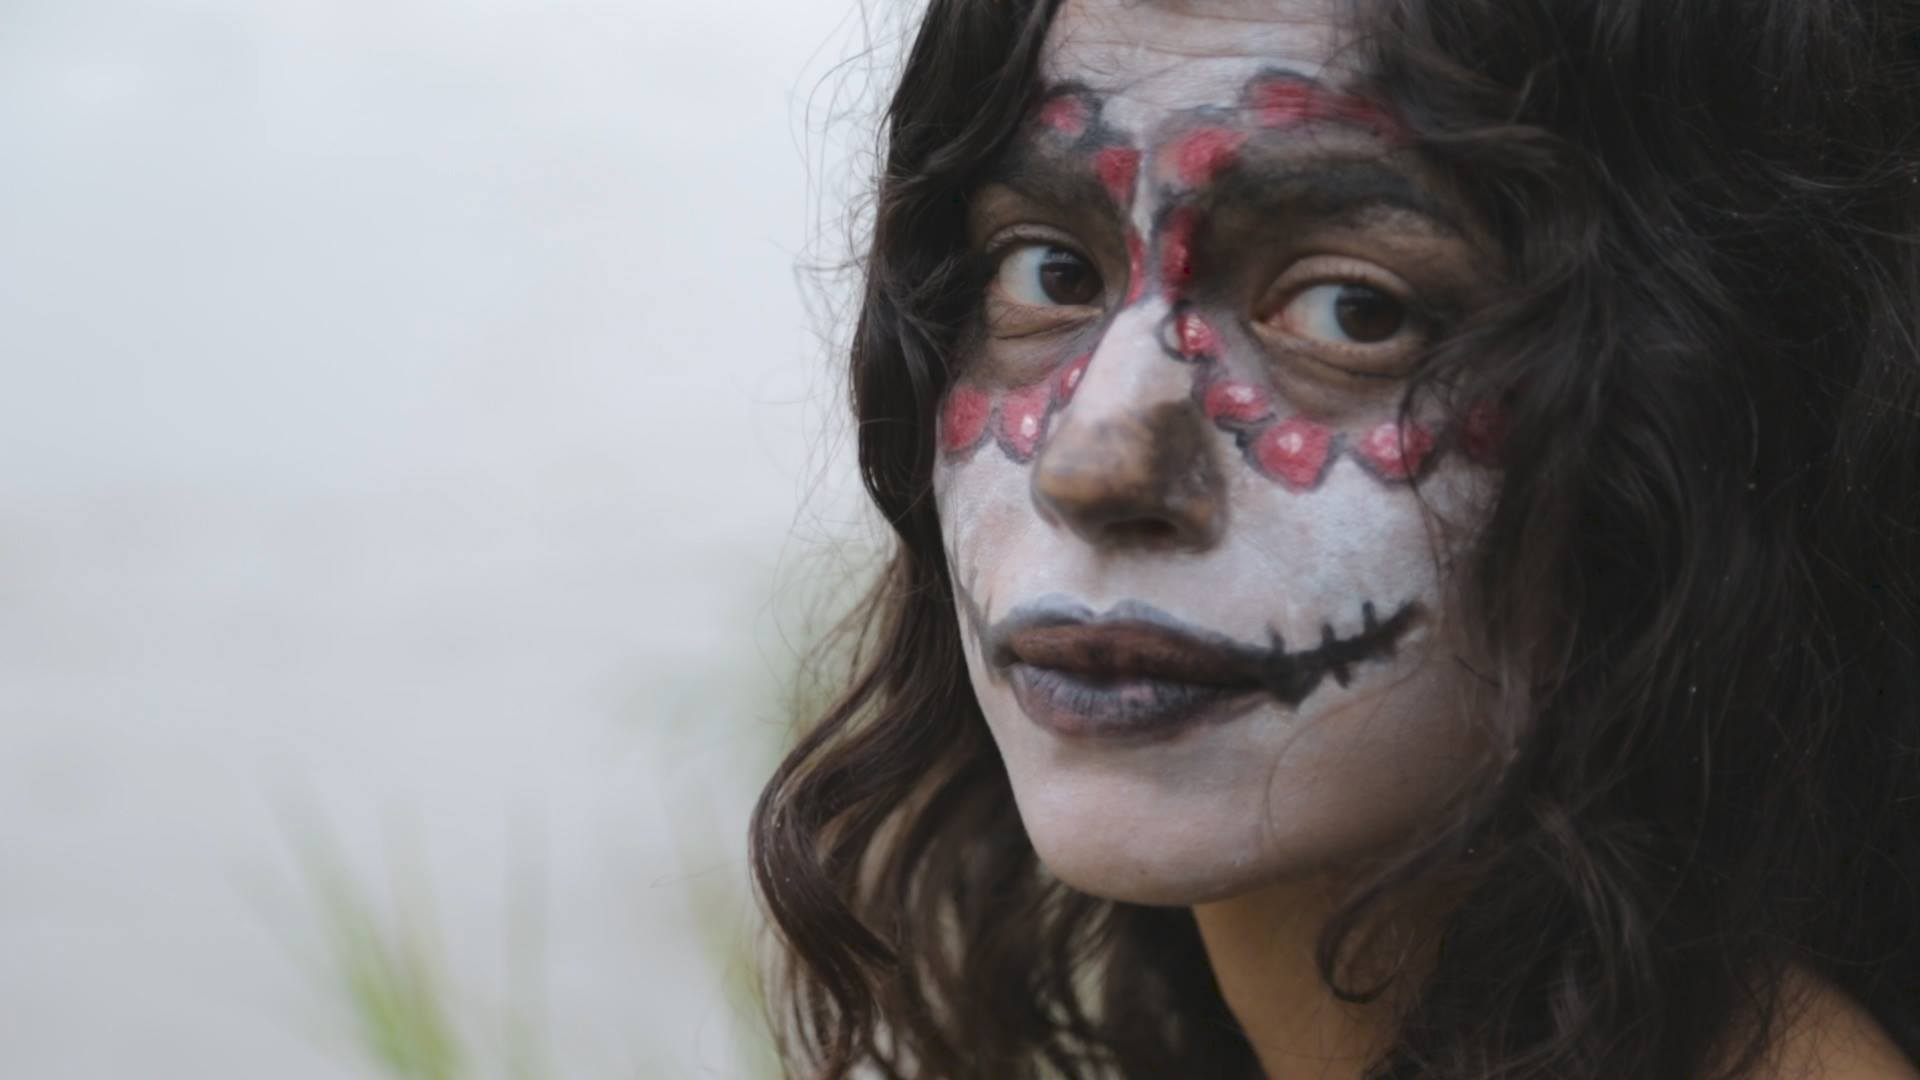 These Latina Filmmakers Are Touring the Country With Their Border Movie Showcase 'Femme Frontera'